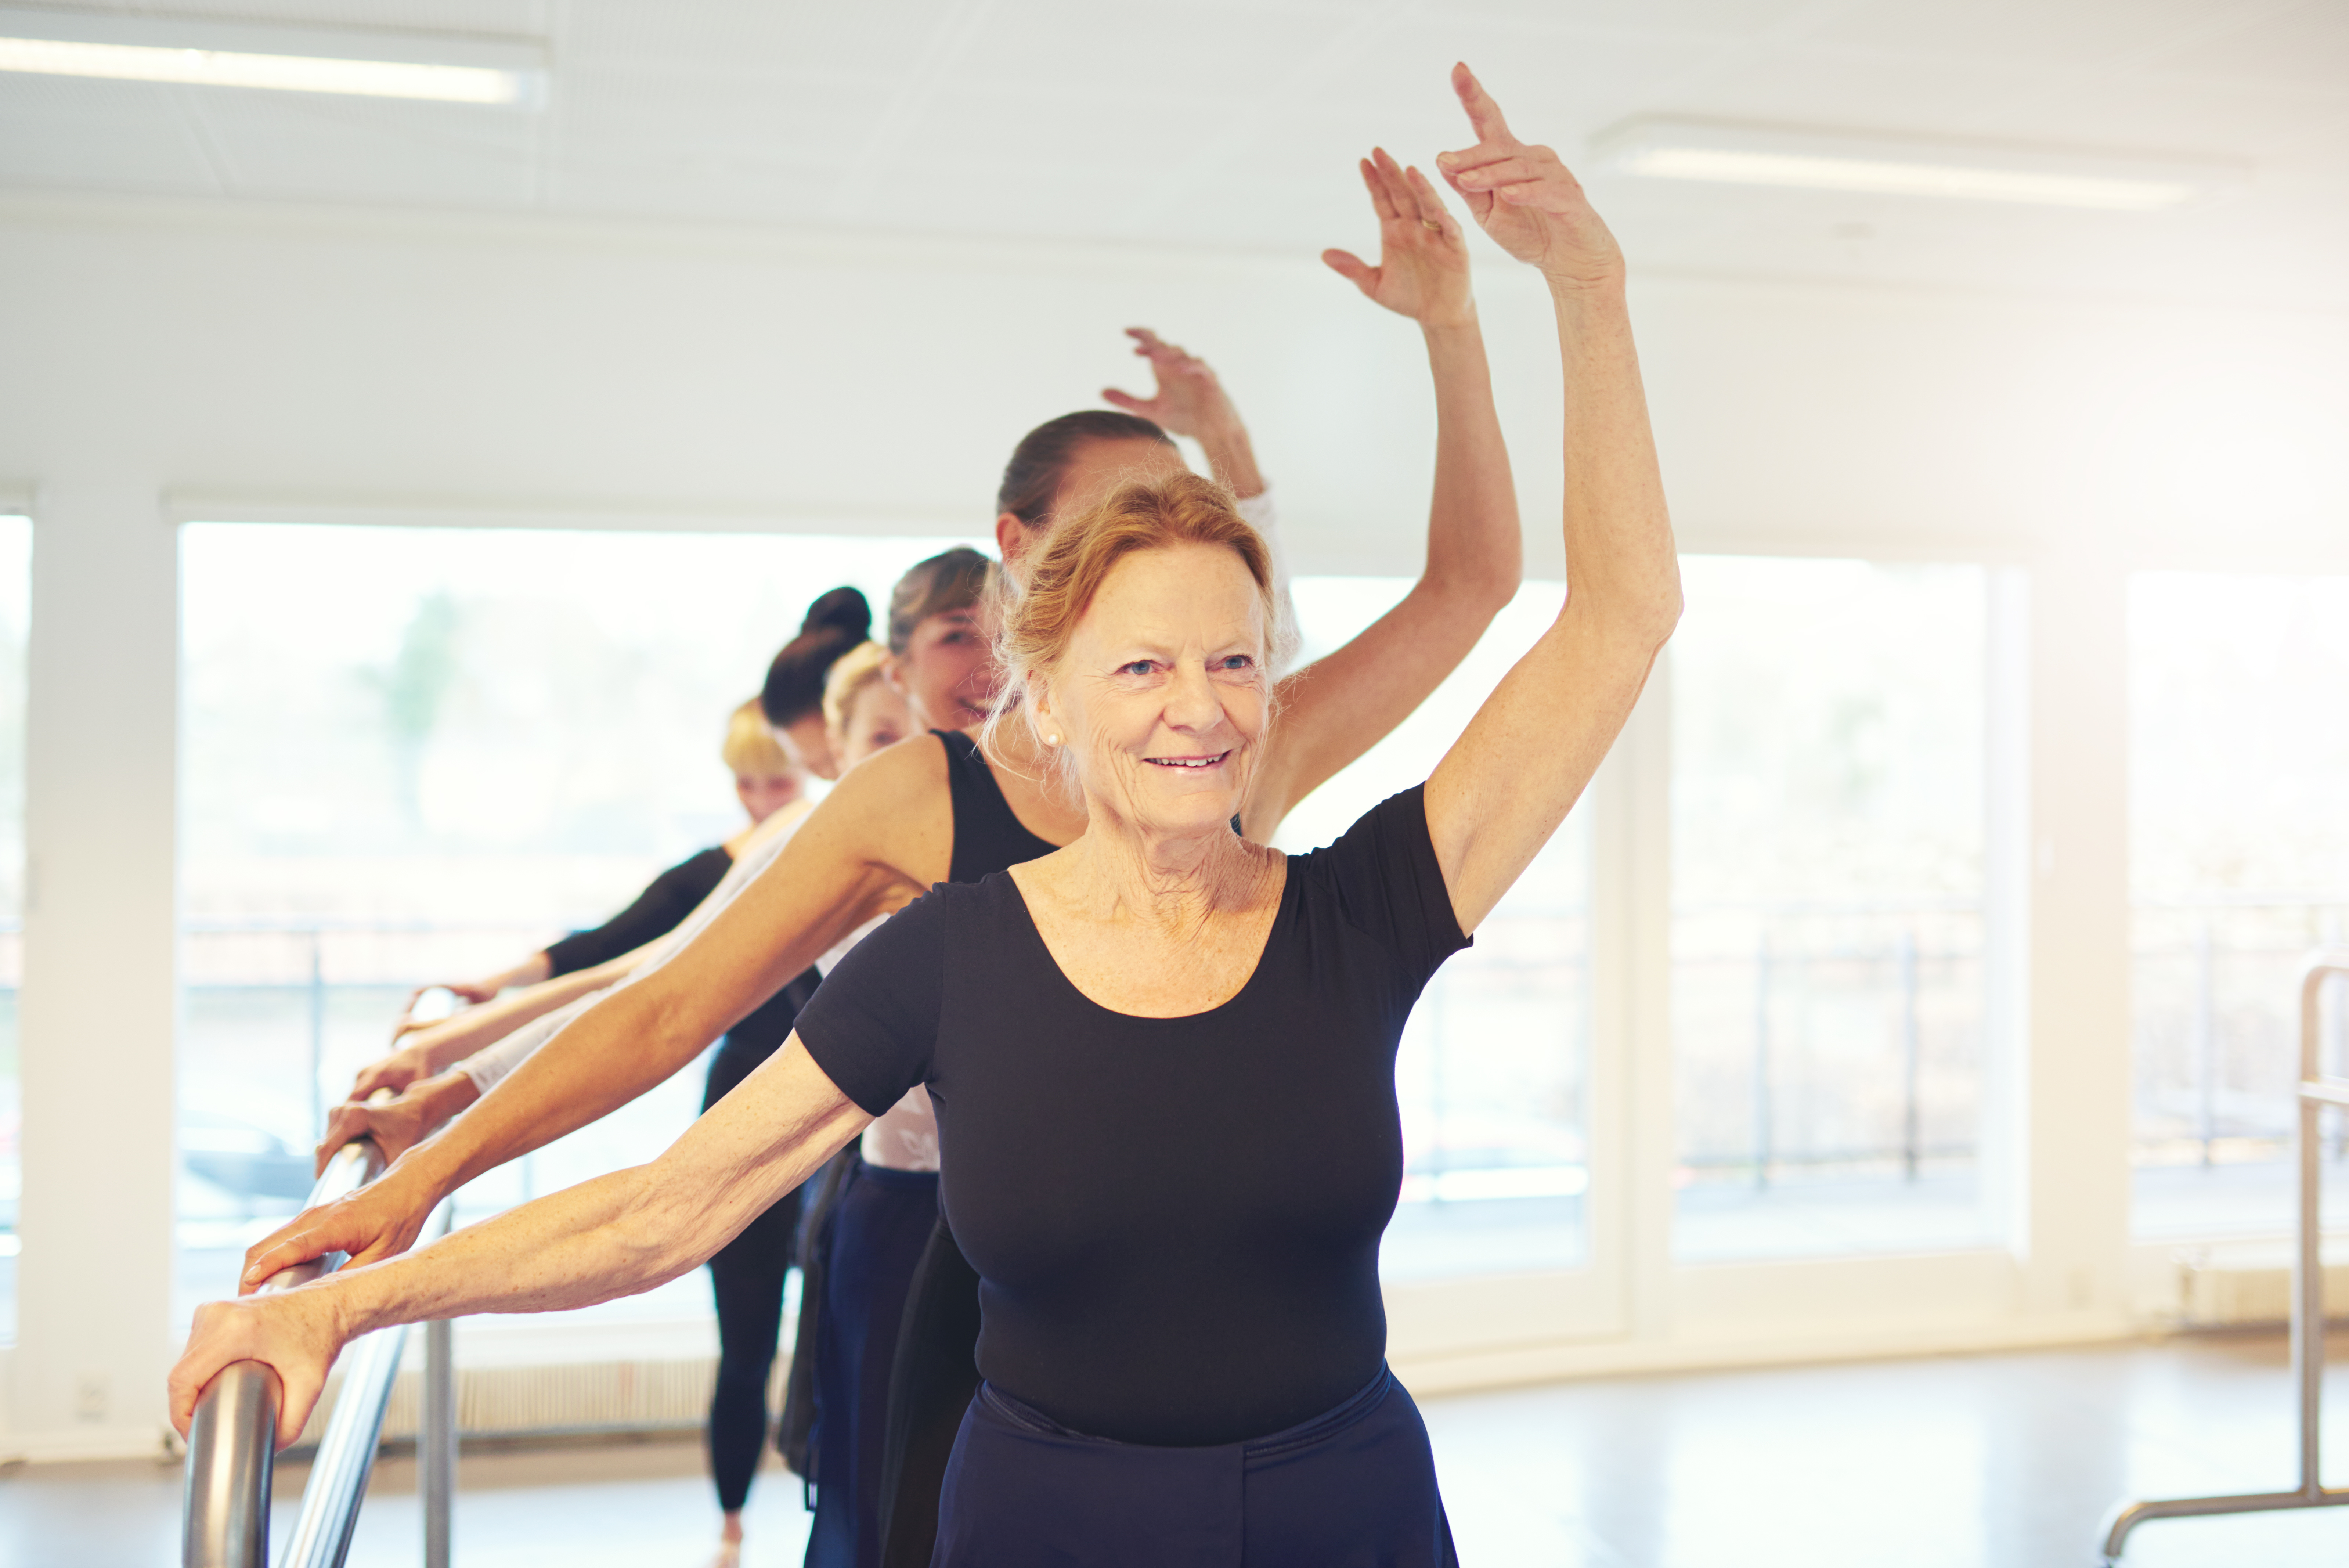 BalletFitness for alle aldre